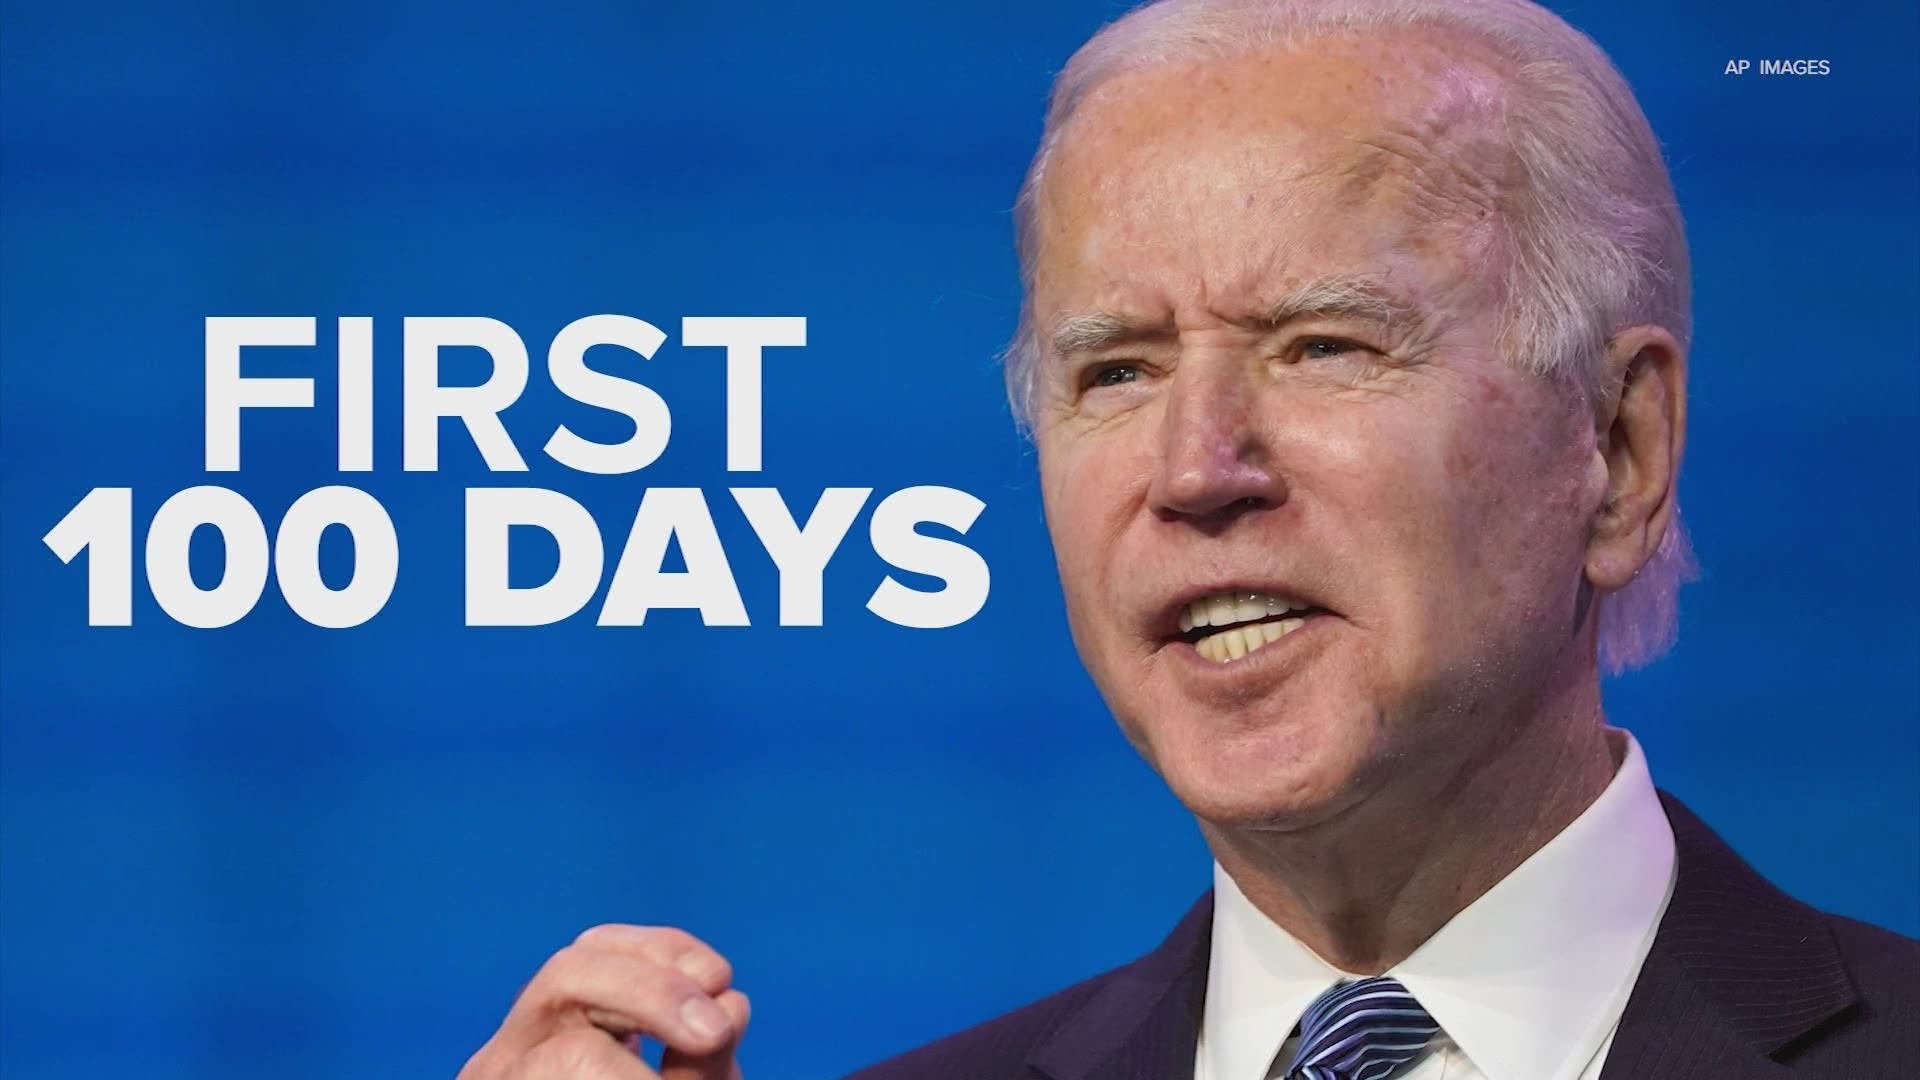 What to expect during President Joe Biden's first 100 days | khou.com